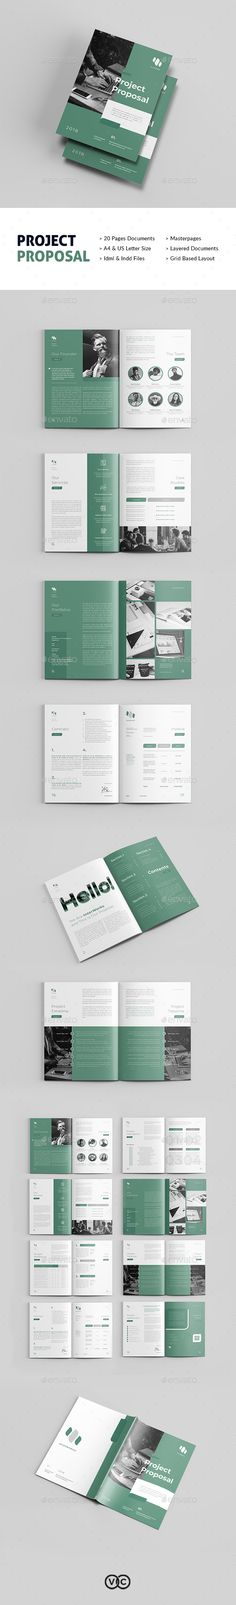 Professional Business Plan and Company Profile Template InDesign - professional business plan